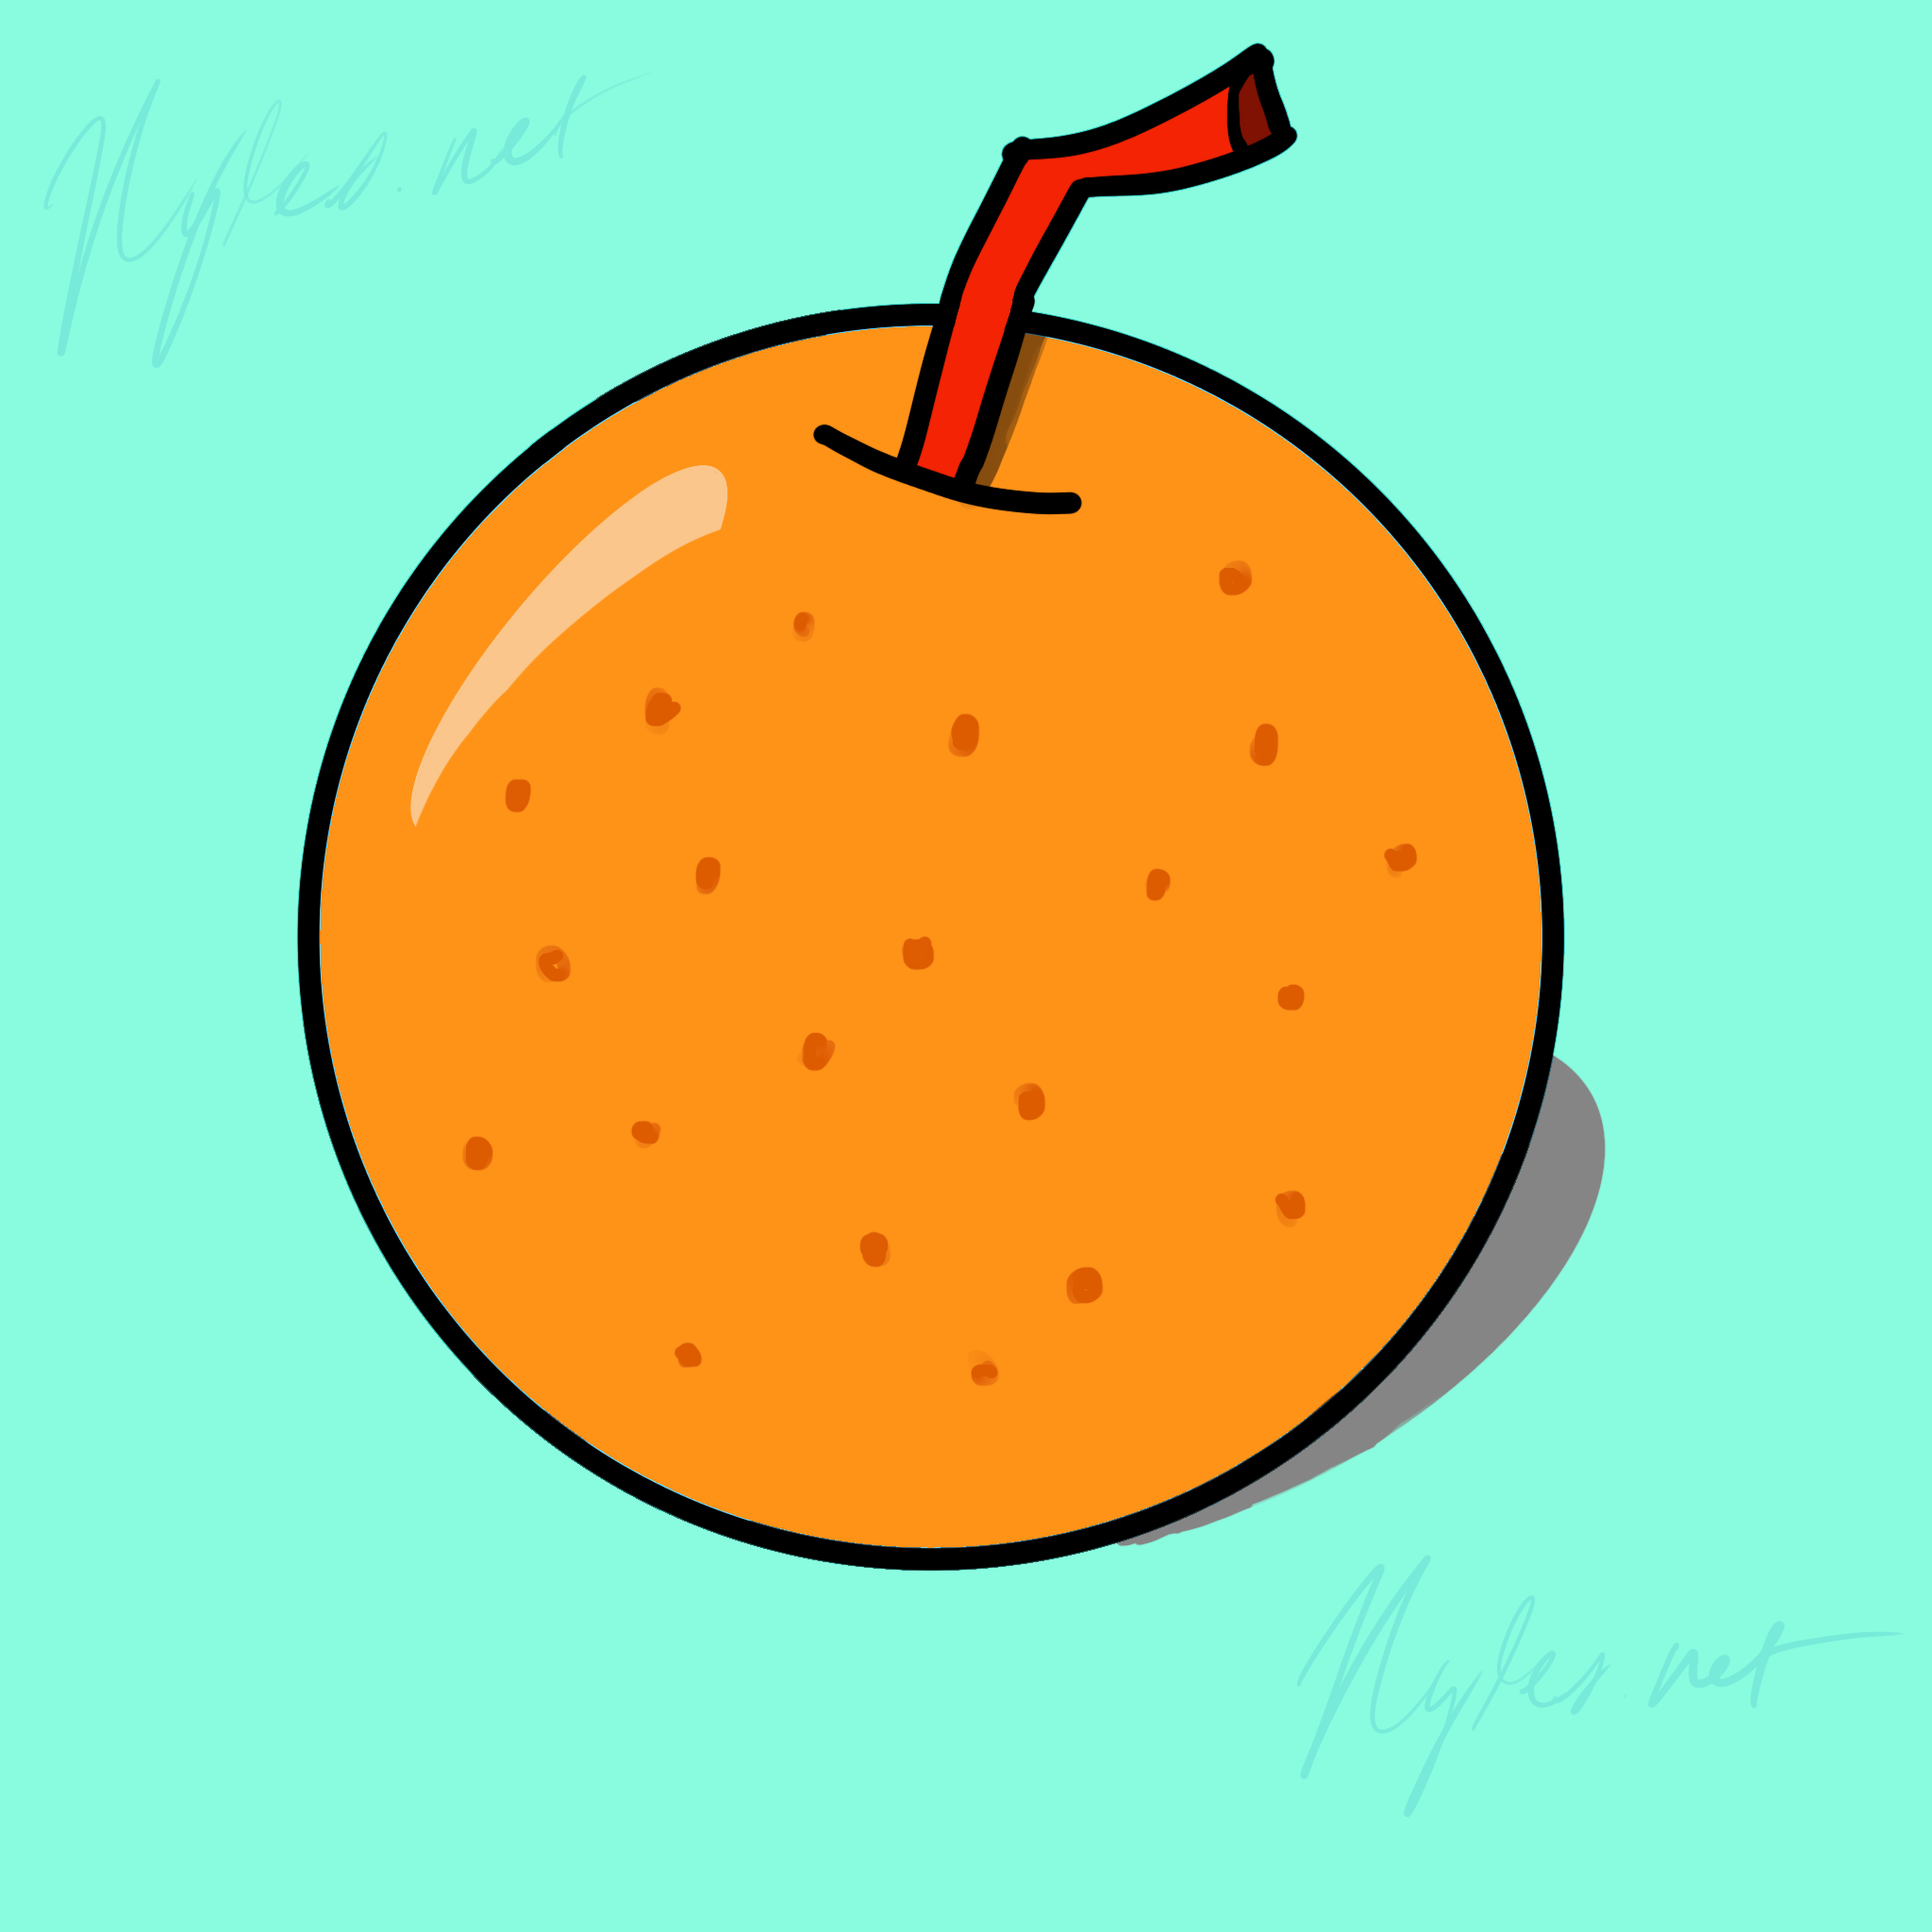 2D Digital Drawing of a carton orange with a red straw into the top